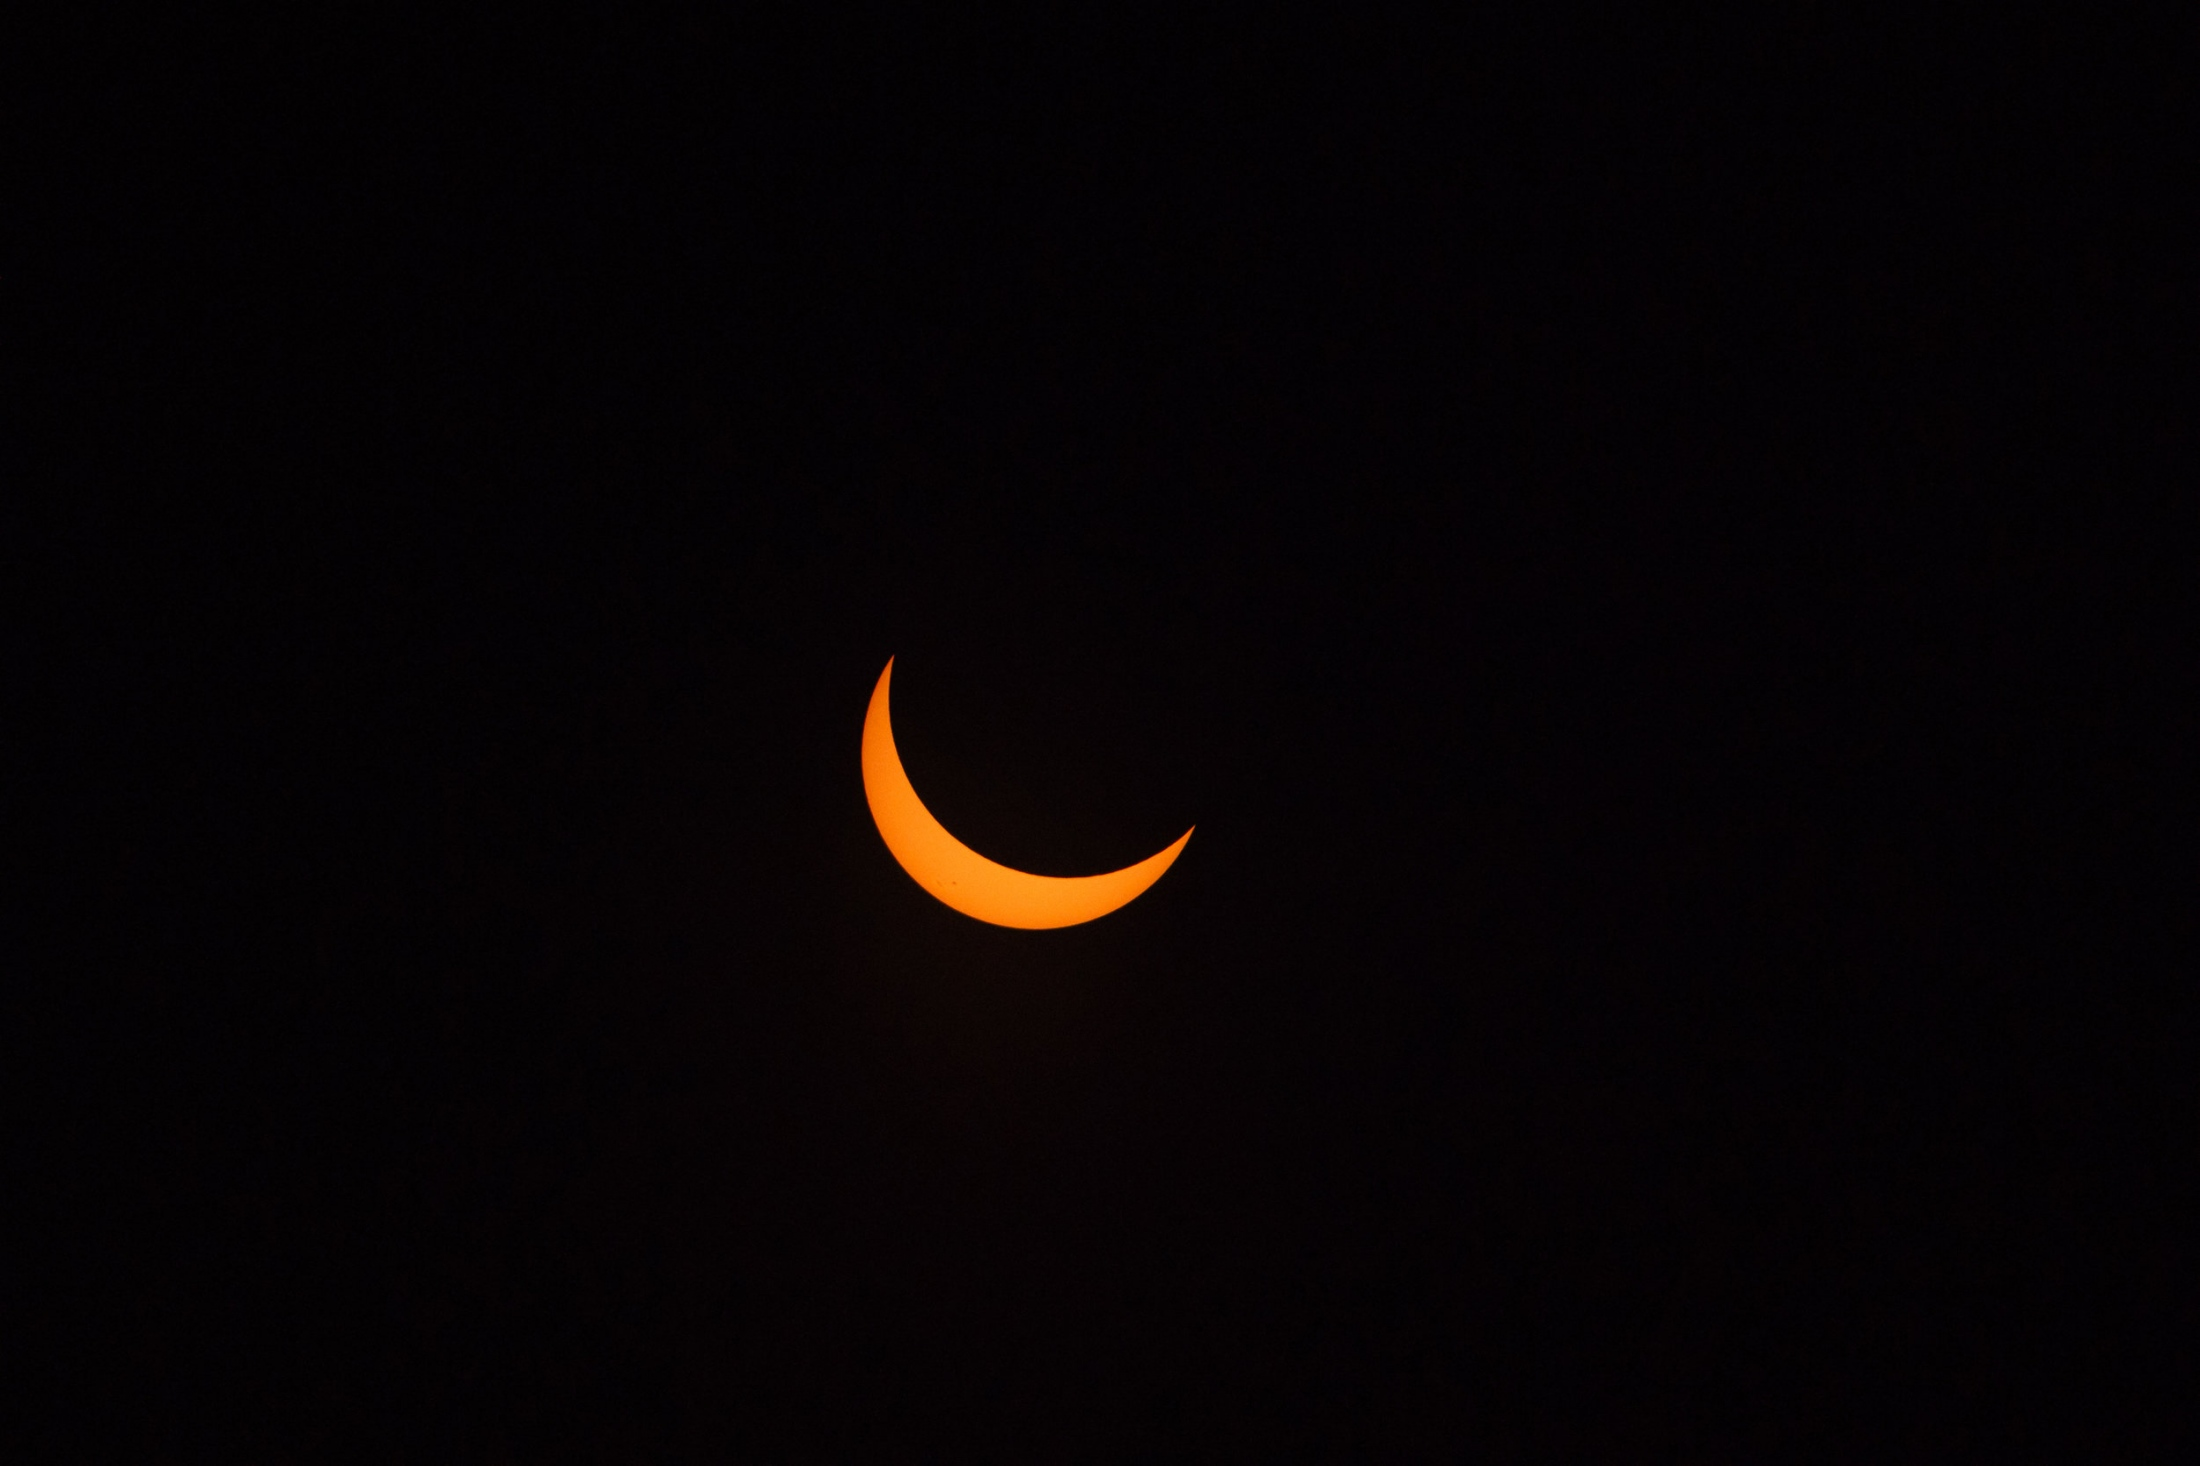 Solar eclipse moments before becoming a total solar eclipse, Payette, ID.